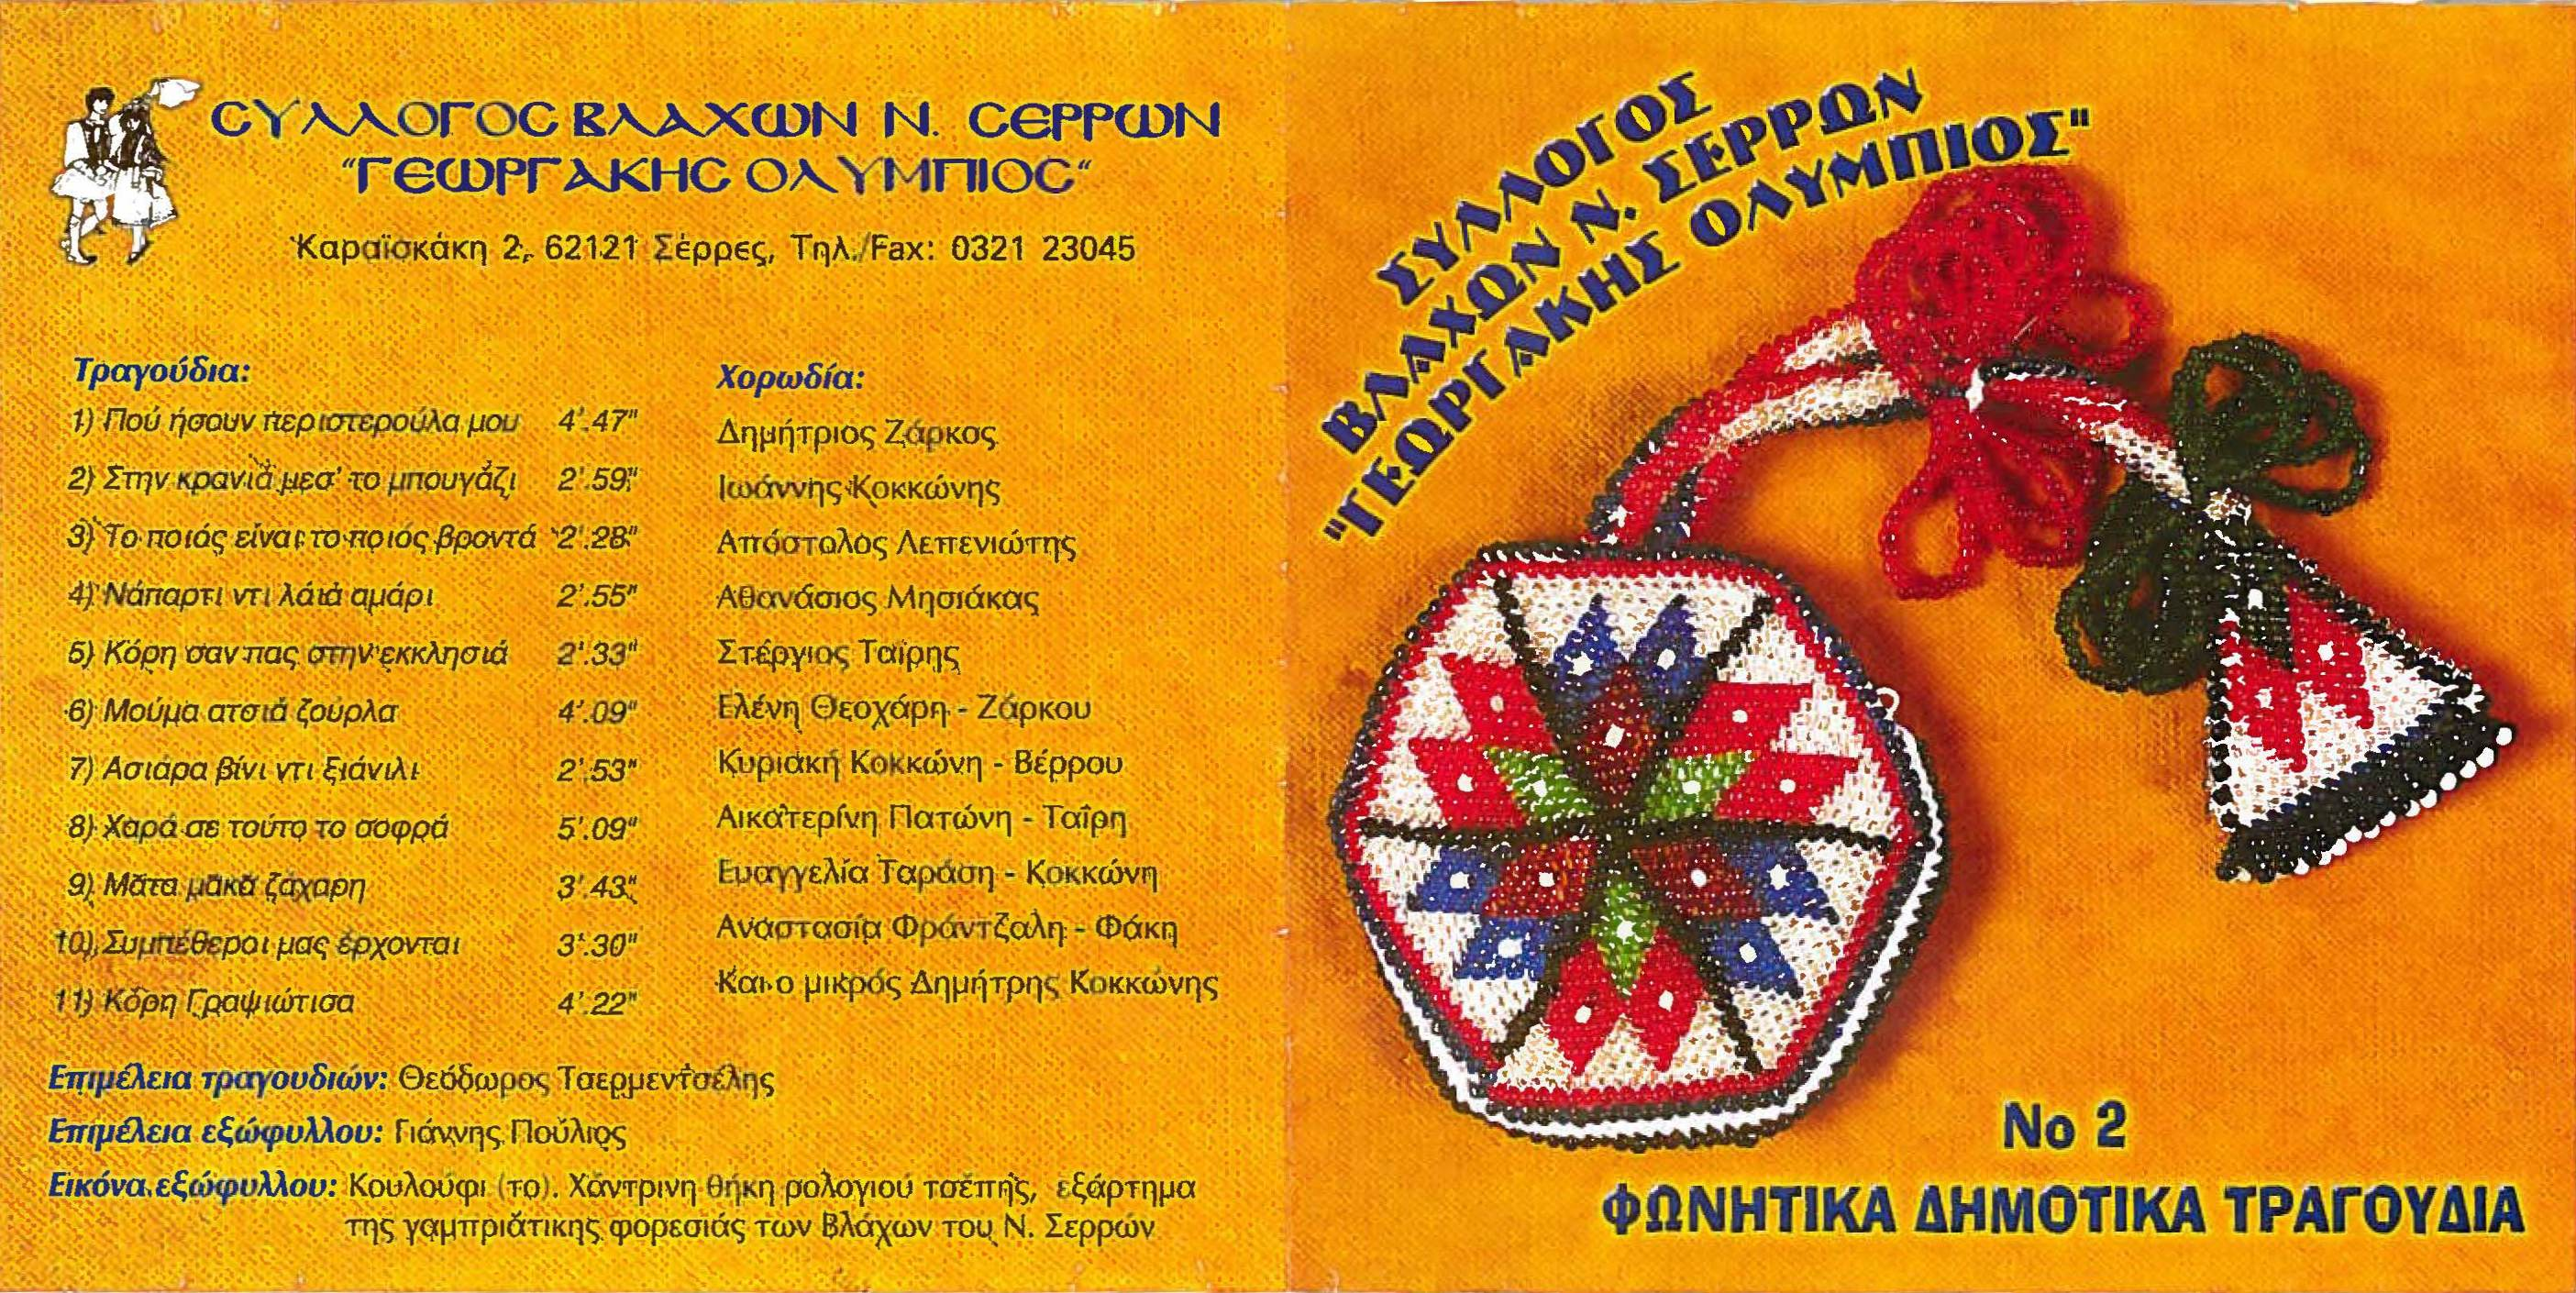 ASSOCIATION OF VLACXHS PREF. OF SERRES GEORGAKIS OLYMPIOS NO2